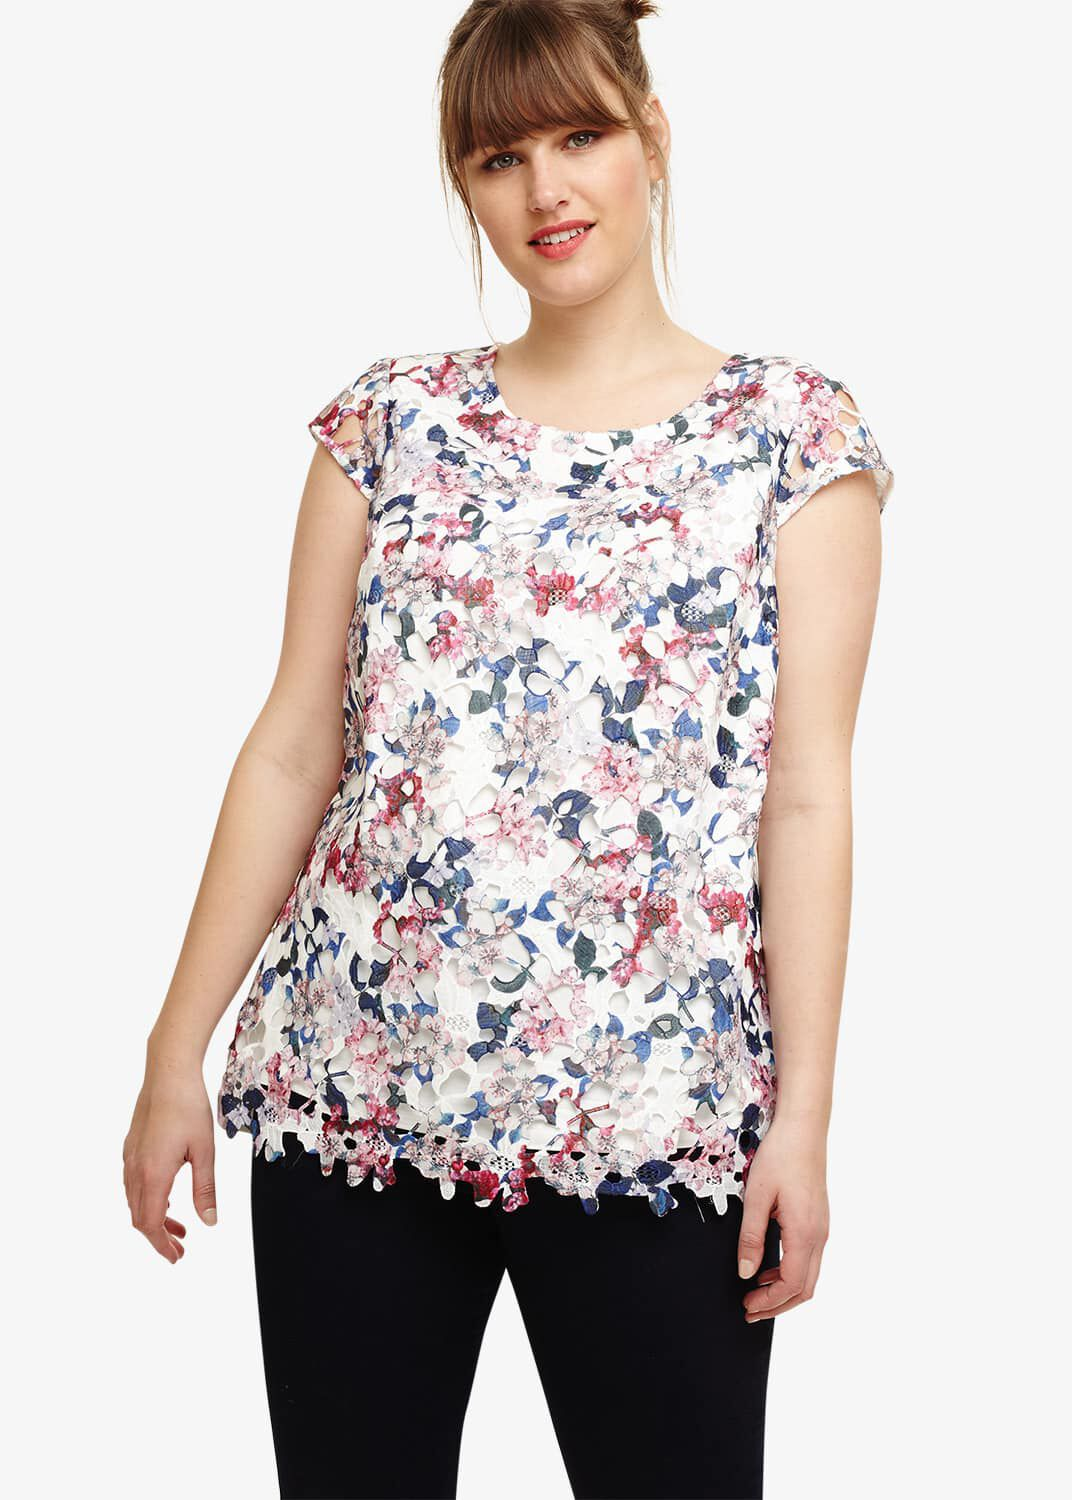 Studio 8 Sunny Printed Lace Top, White, Blouse